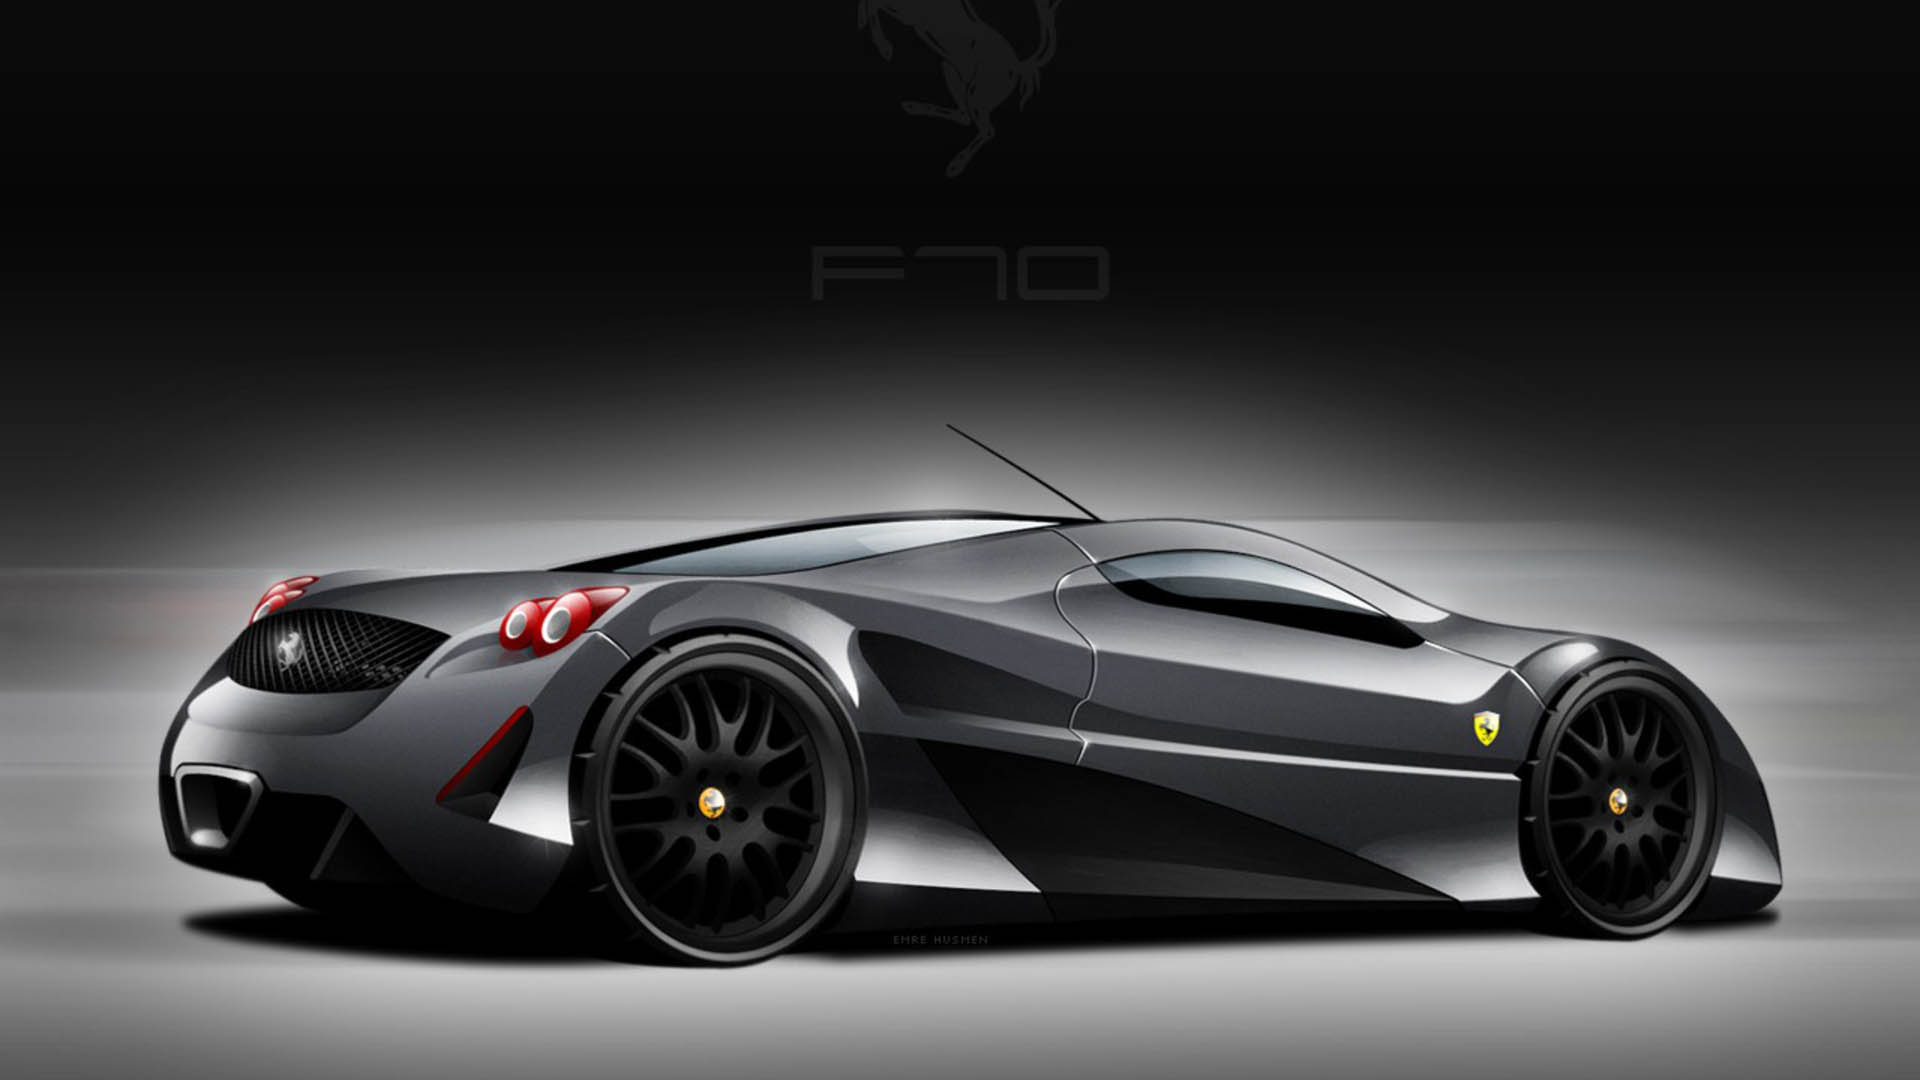 black ferrari cars wallpapers - sf wallpaper